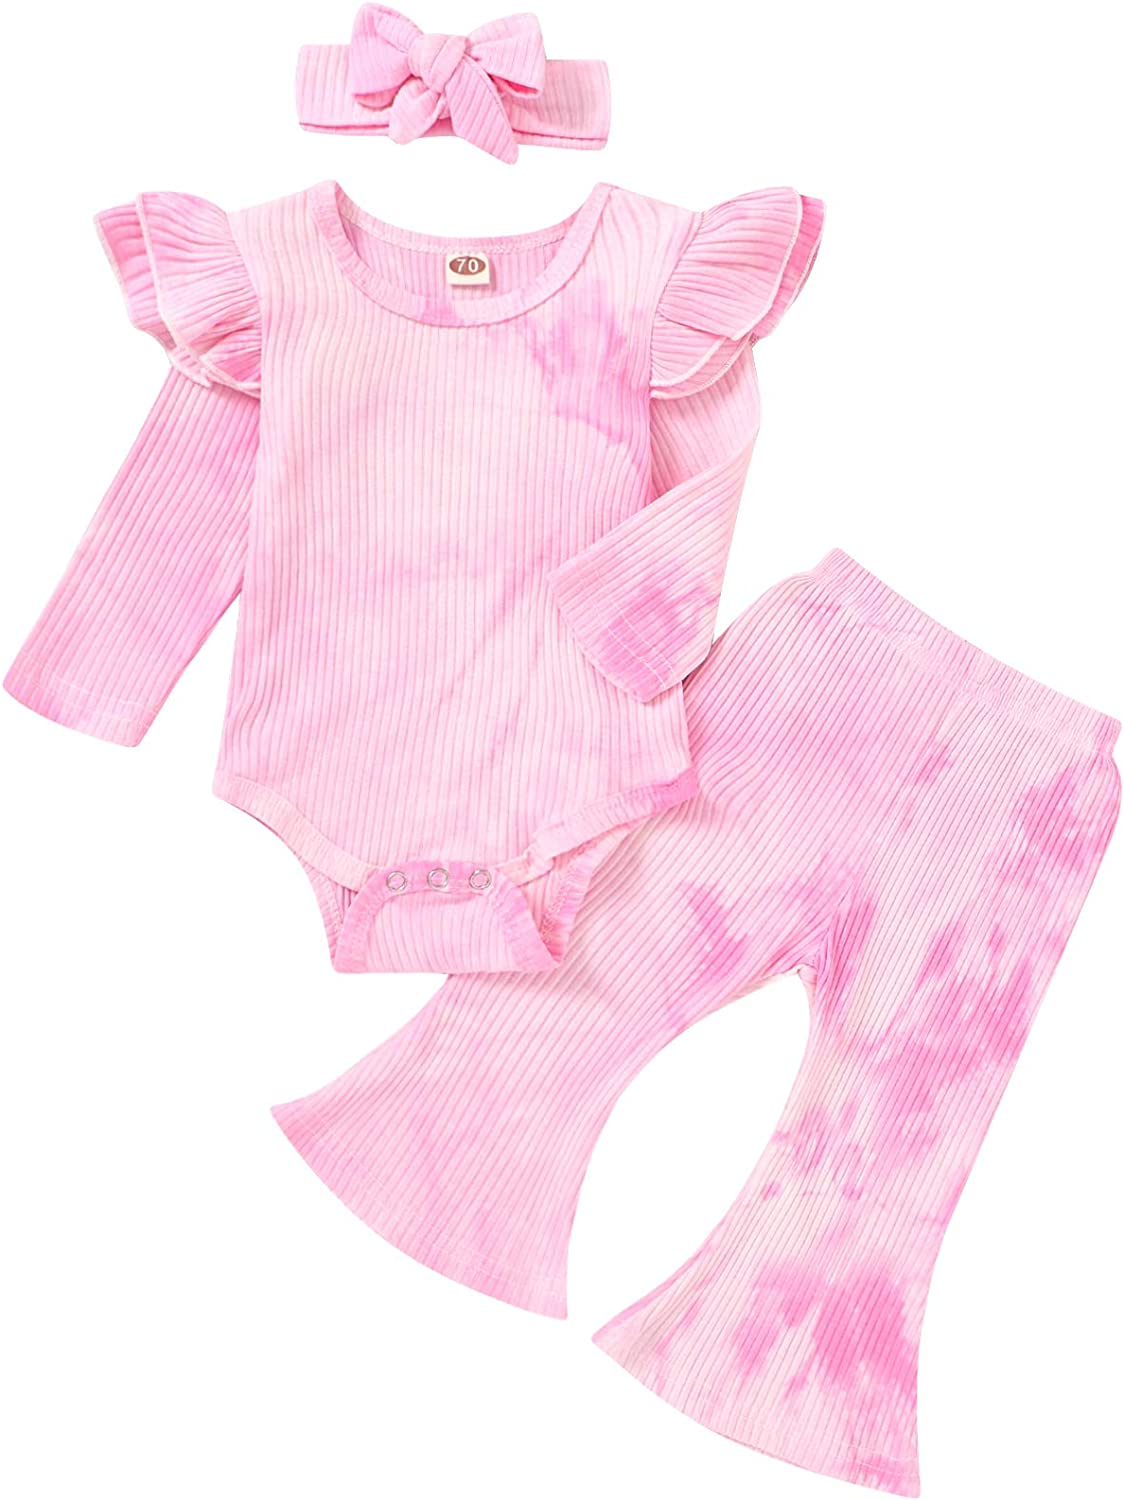 Newborn Baby Girl Ribbed Knit Fall Clothes Set Ruffle Long Sleeve Romper+Flare Pants+Headband Outfits